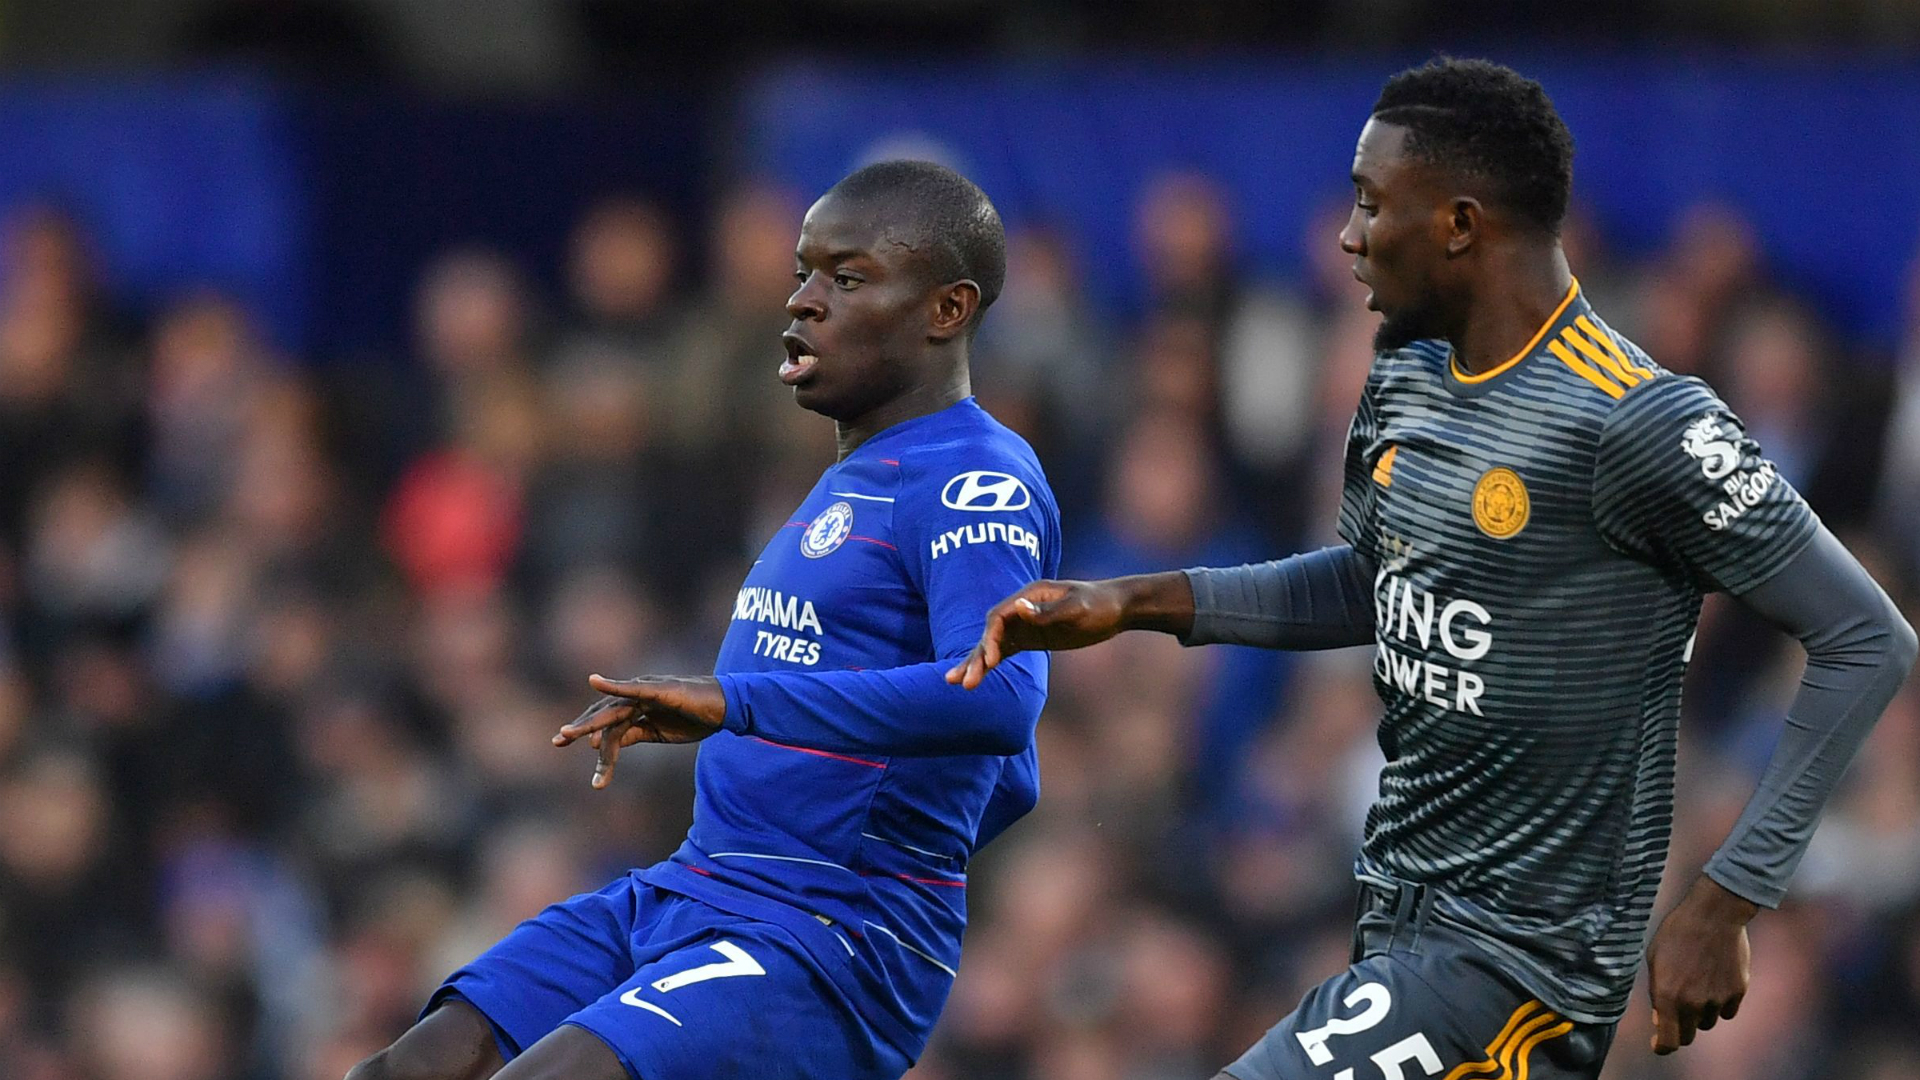 'Kante is a machine but I see myself as Ndidi' – Leicester City star dismisses comparison